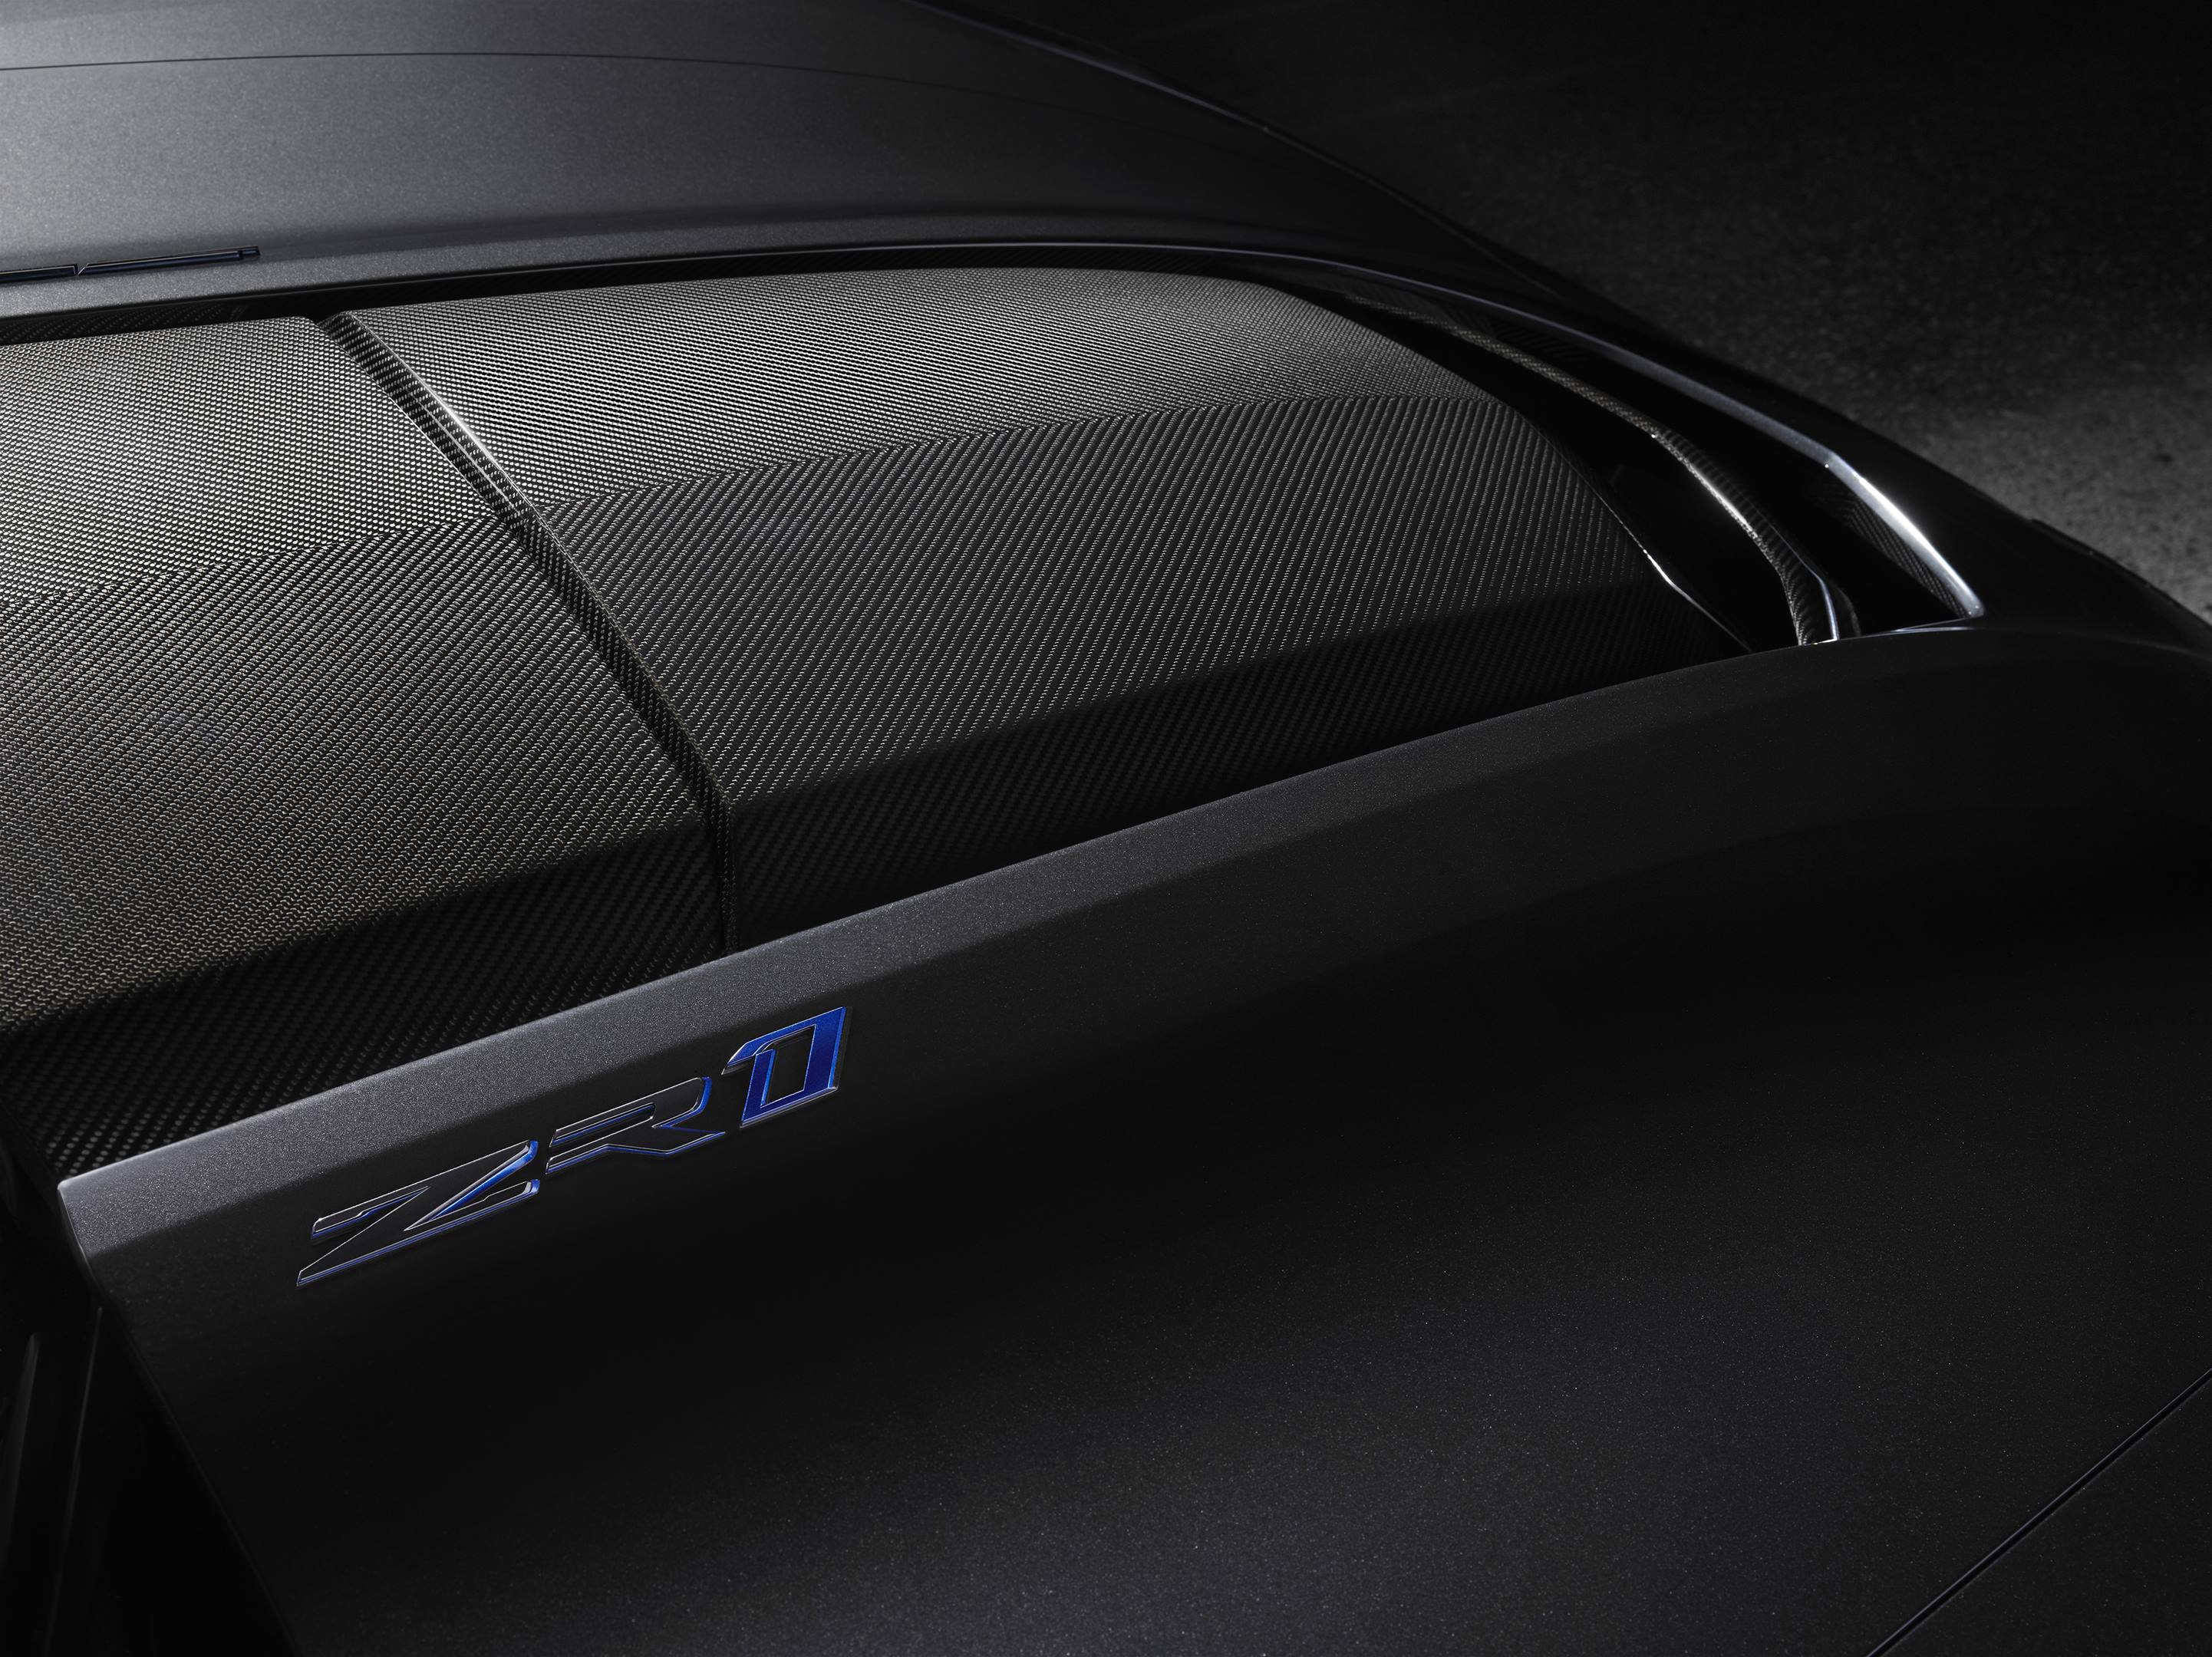 2019 Chevrolet Corvette ZR1 Hood Scoop Detail shot